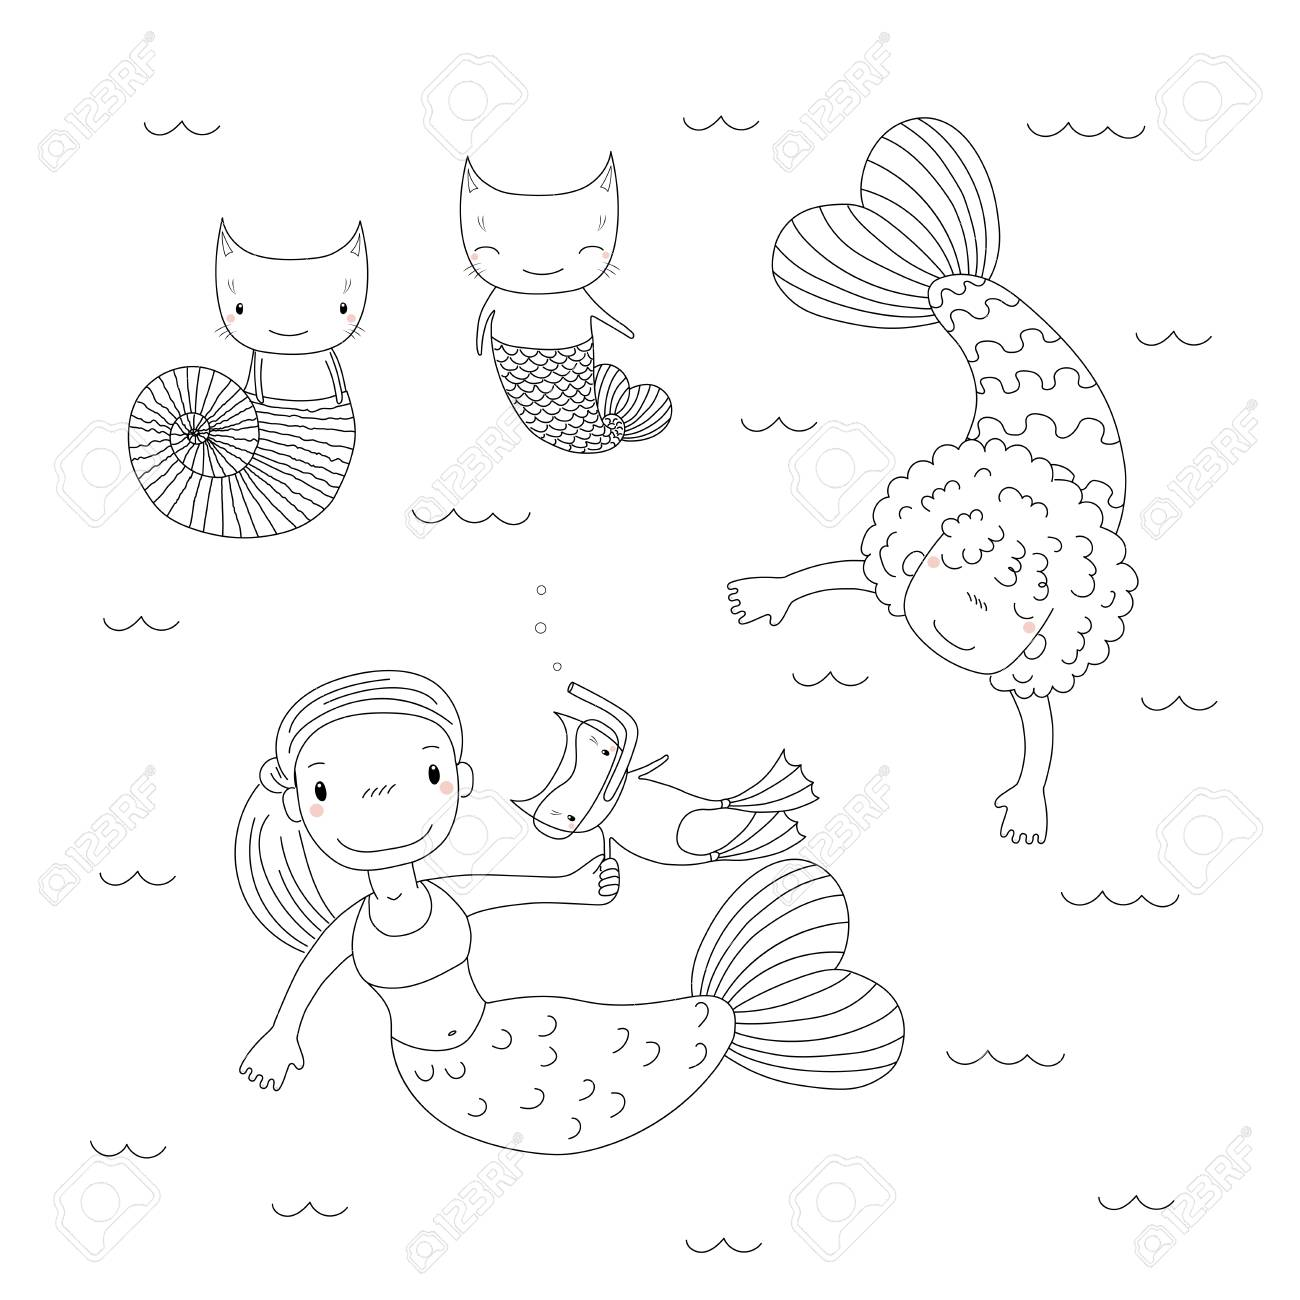 Hand Drawn Black And White Vector Illustration Of Cute Little ...